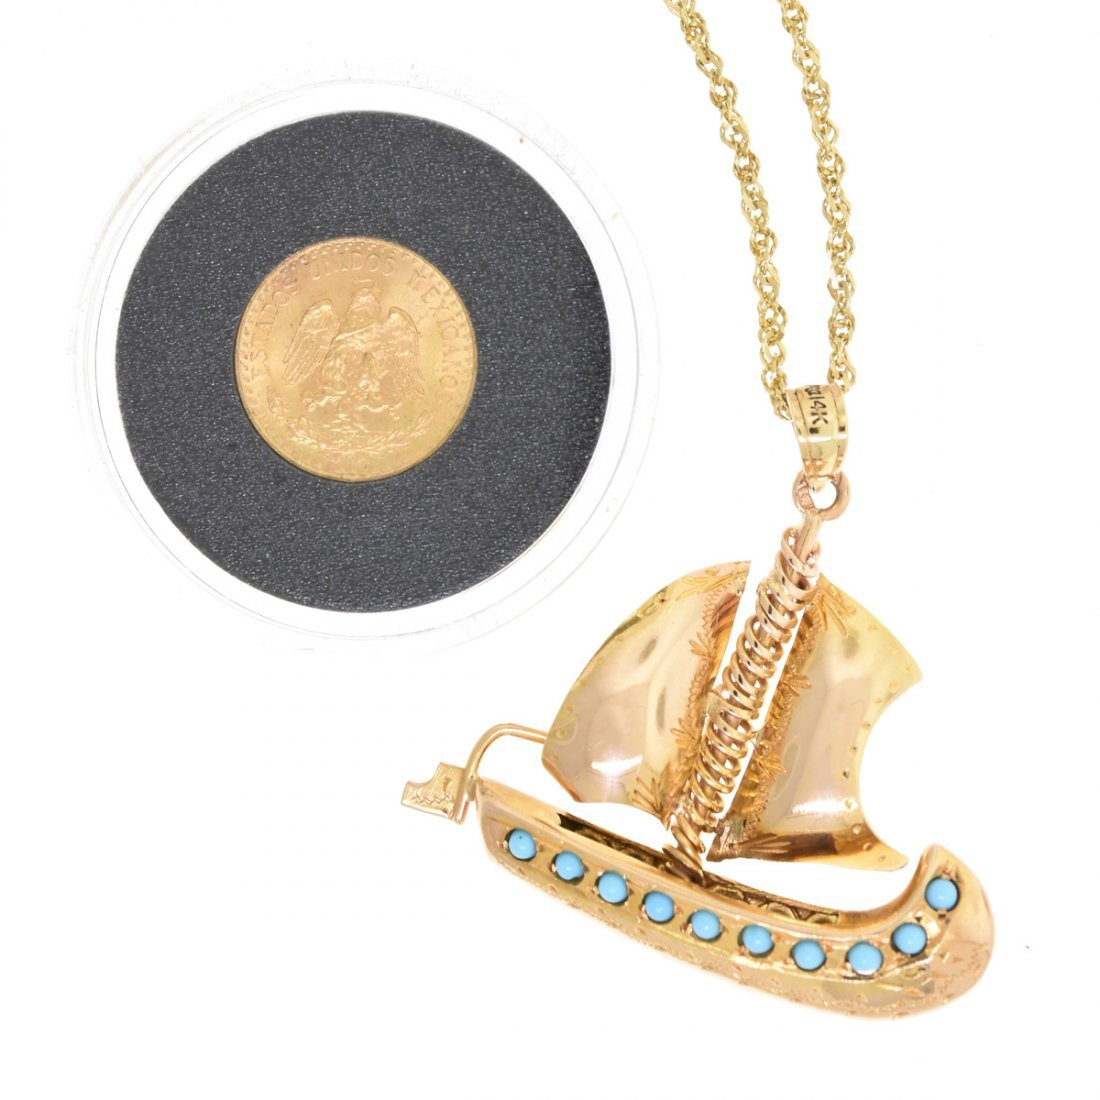 A 14K YELLOW GOLD SAILBOAT LADY'S PENDANT AND A DOS